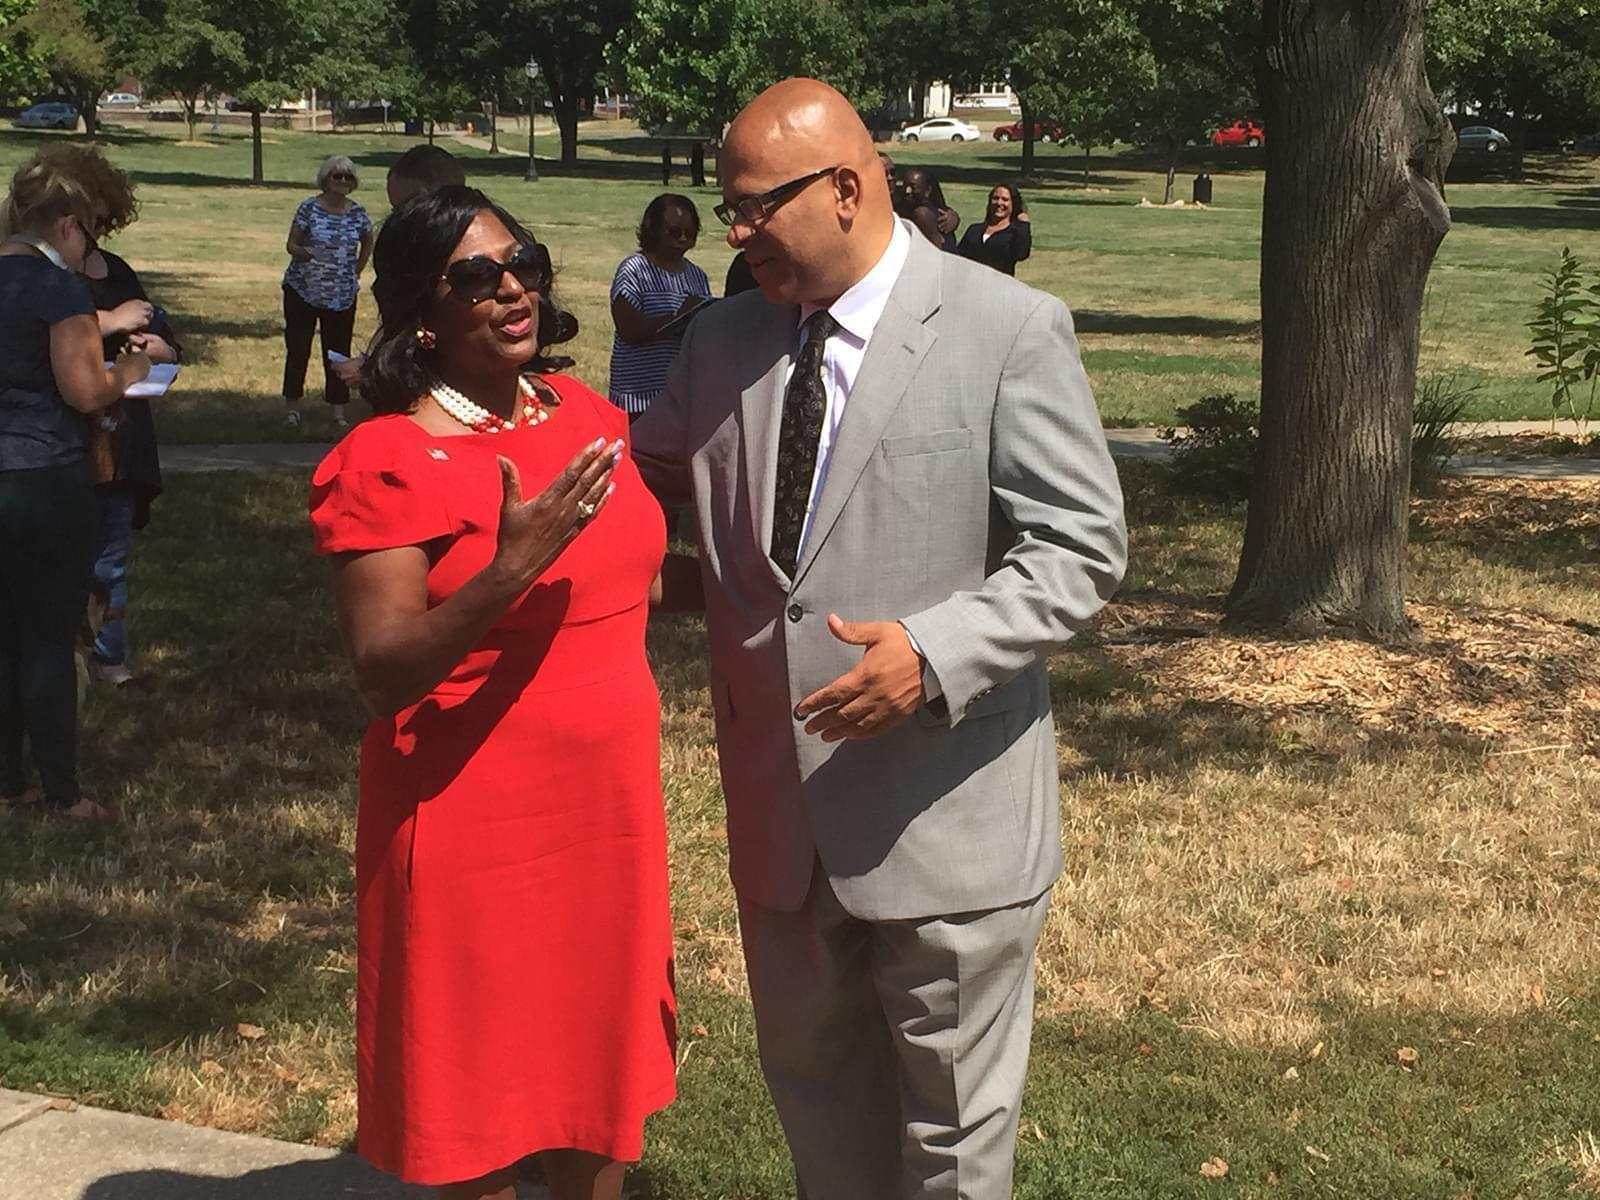 Patricia Avery and Tio Hardiman talking before Avery's official announcement as a Democratic candidate for lieutenant governor.